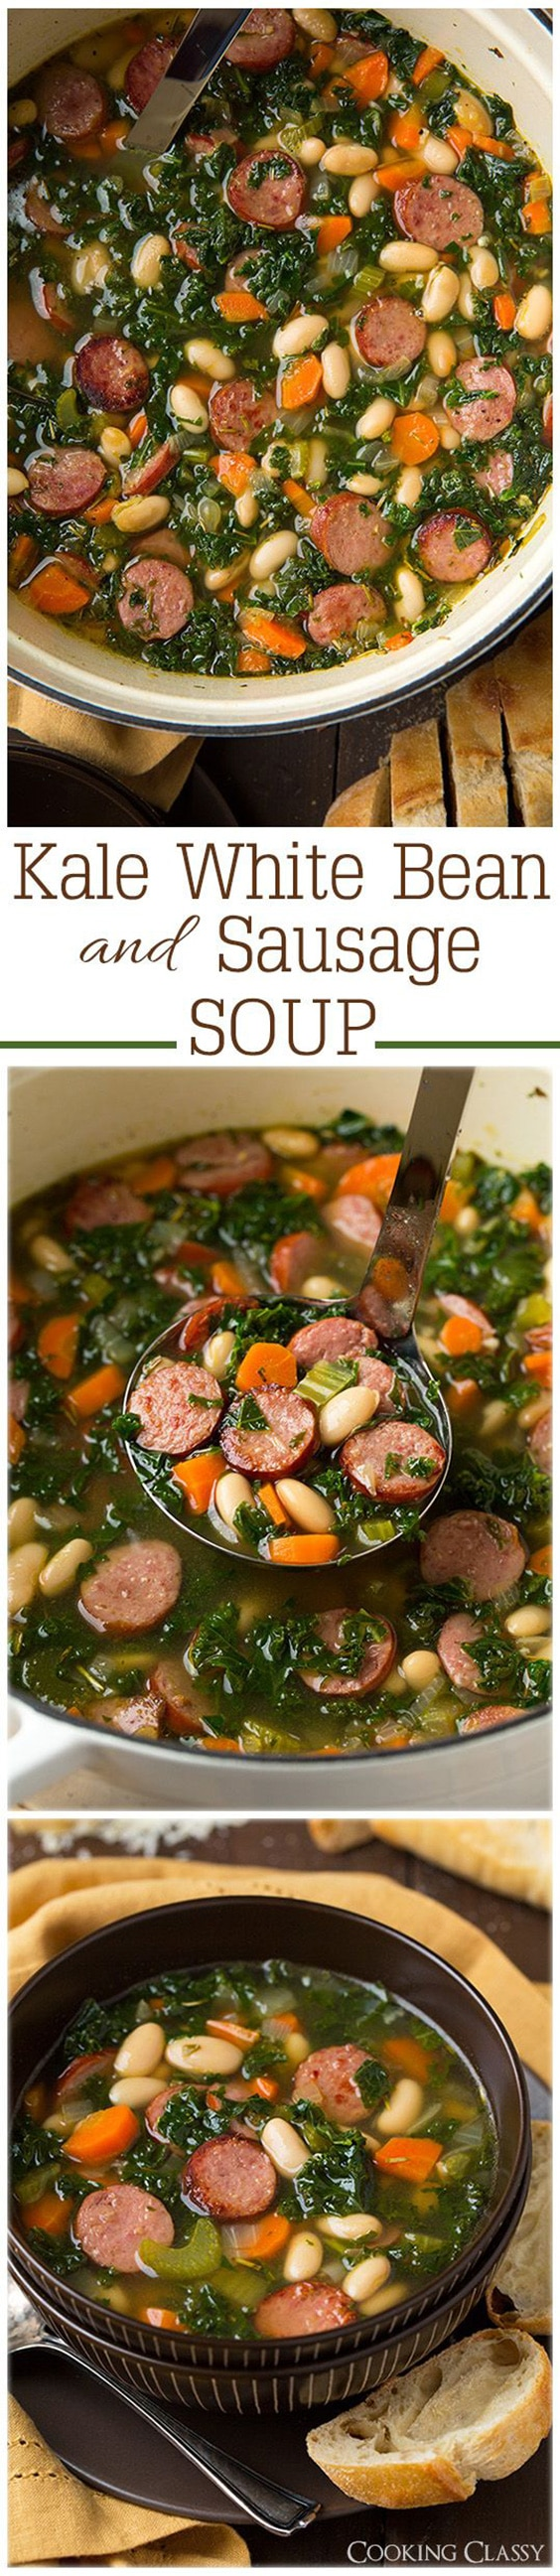 Kale White Bean and Sausage Soup